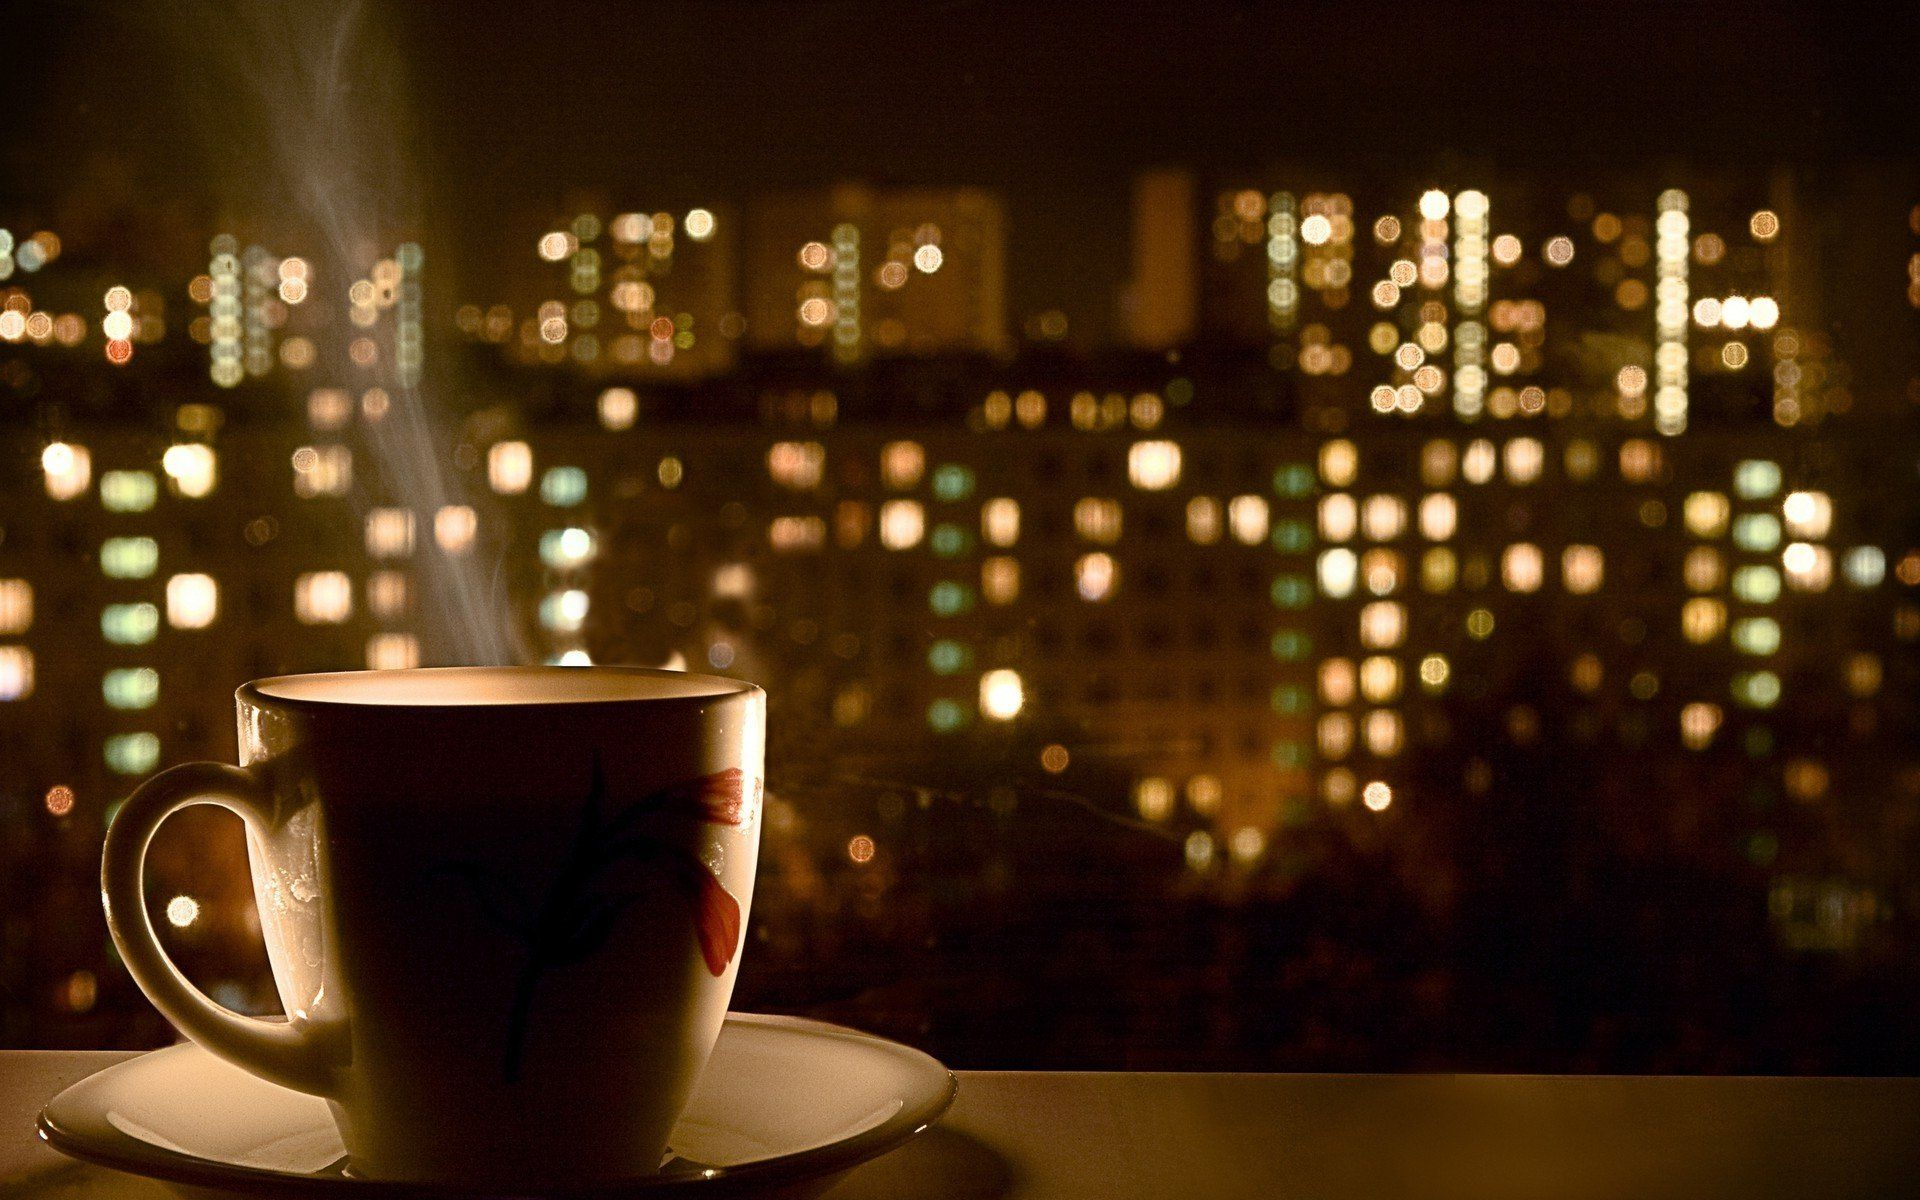 Night Time Coffee Wallpaper » WallDevil - Best free HD desktop and mobile wallpapers